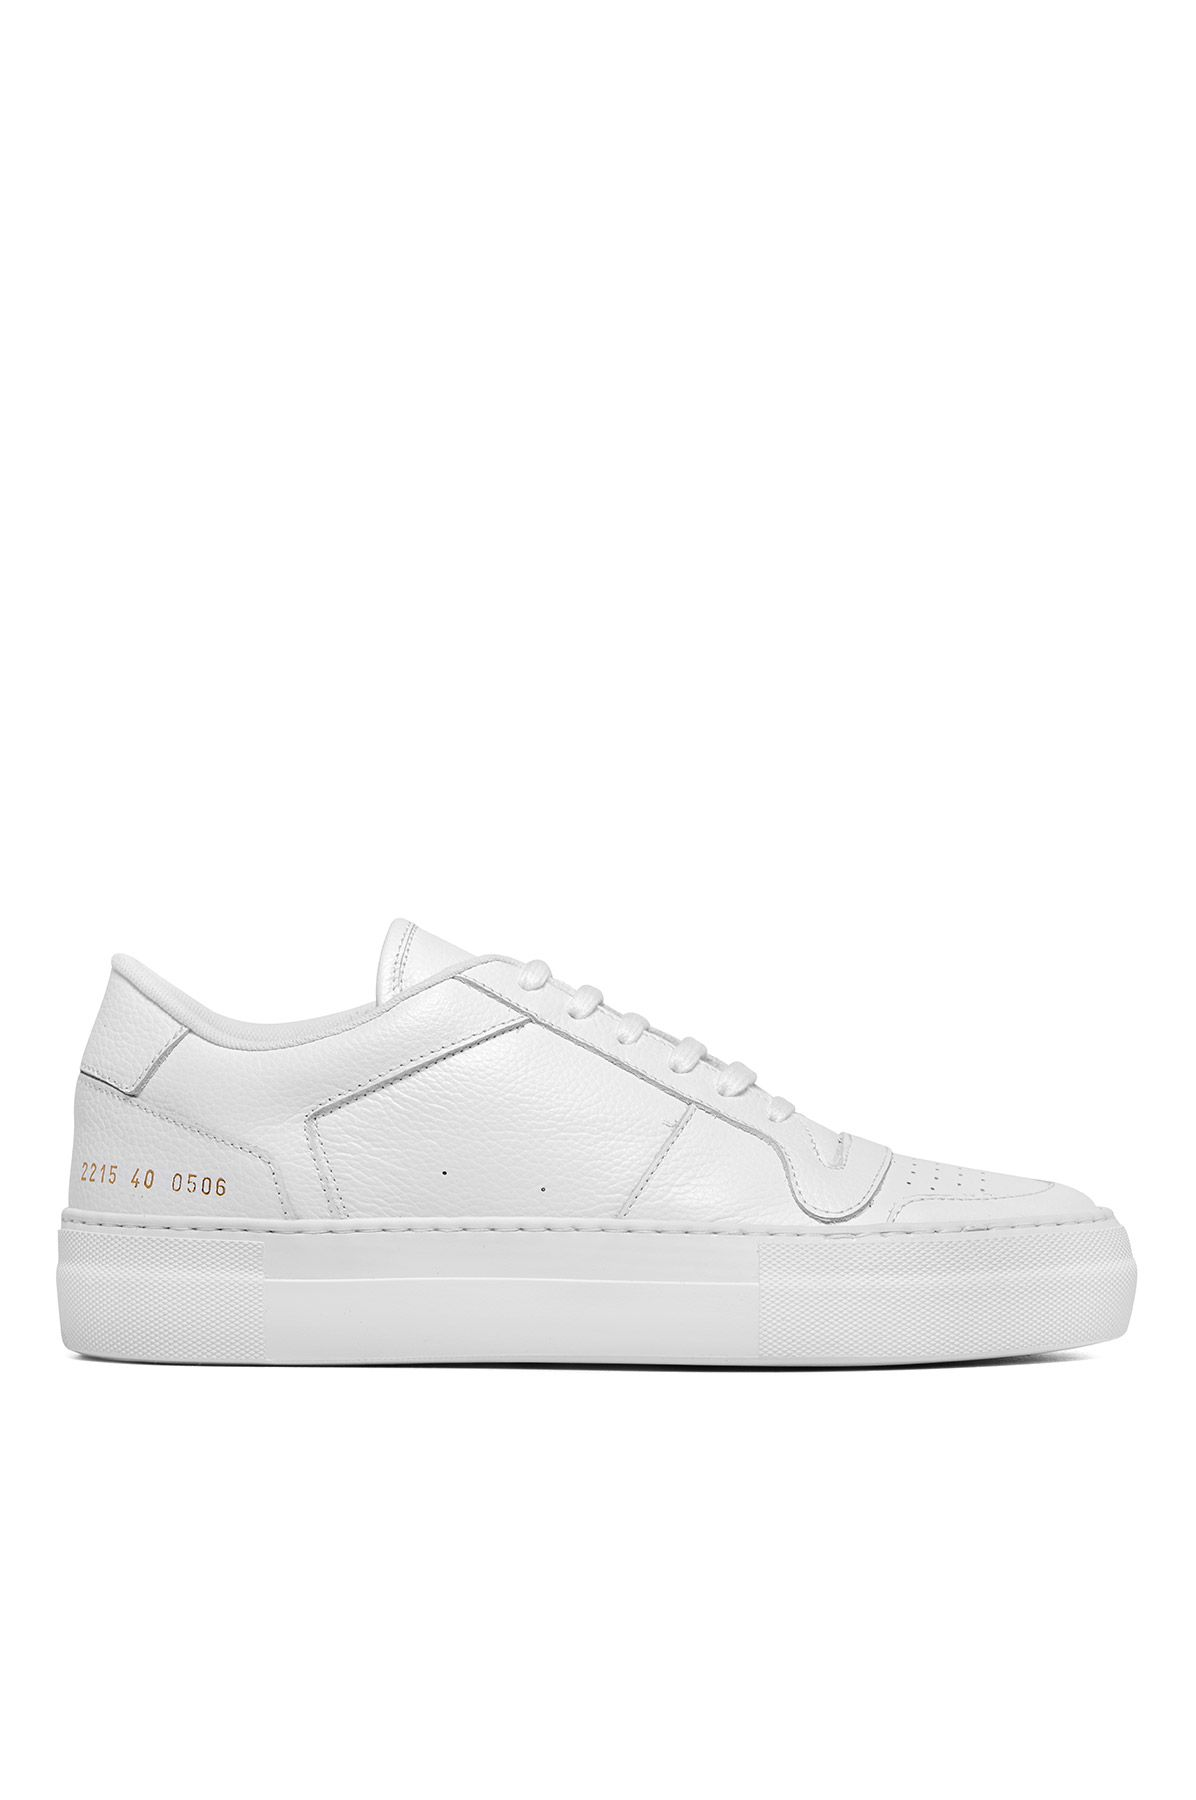 COMMON PROJECTS Full Court Low Top